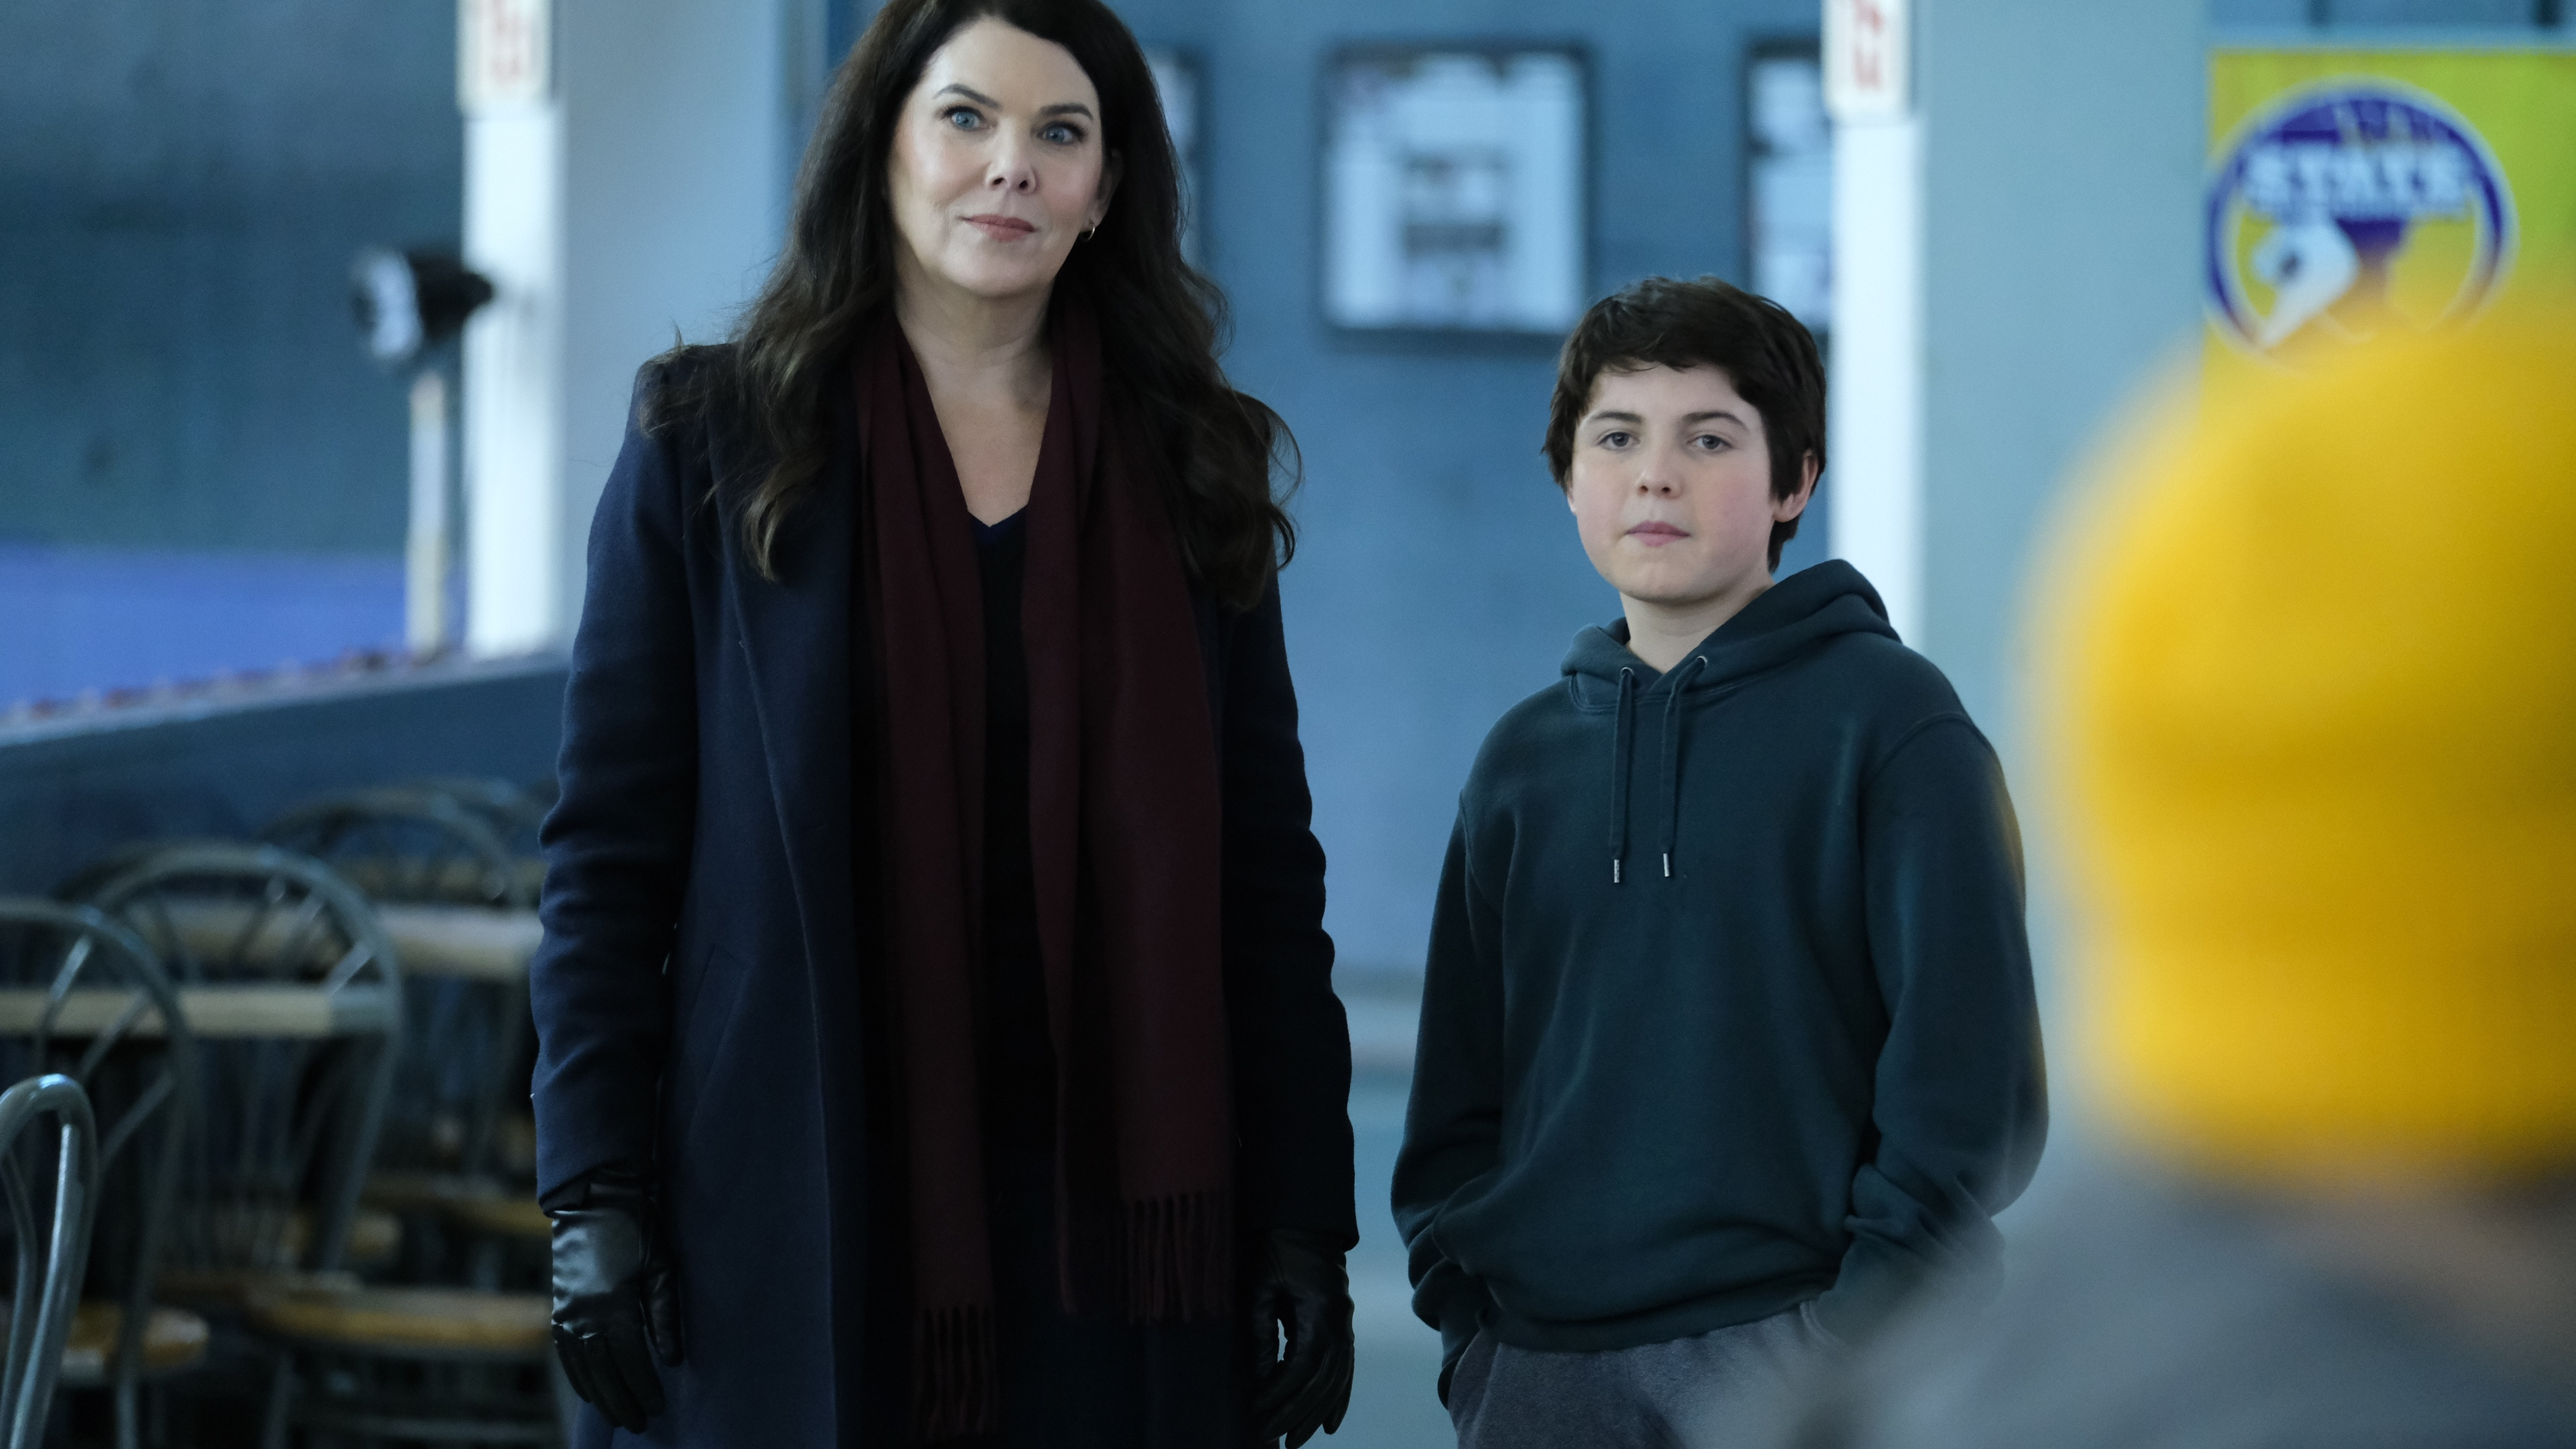 """THE MIGHTY DUCKS: GAME CHANGERS - """"State of Play"""" - The Don't Bothers are forced to choose what's really important, as they face the Ducks at States. (Disney/Liane Hentscher) LAUREN GRAHAM, BRADY NOON"""